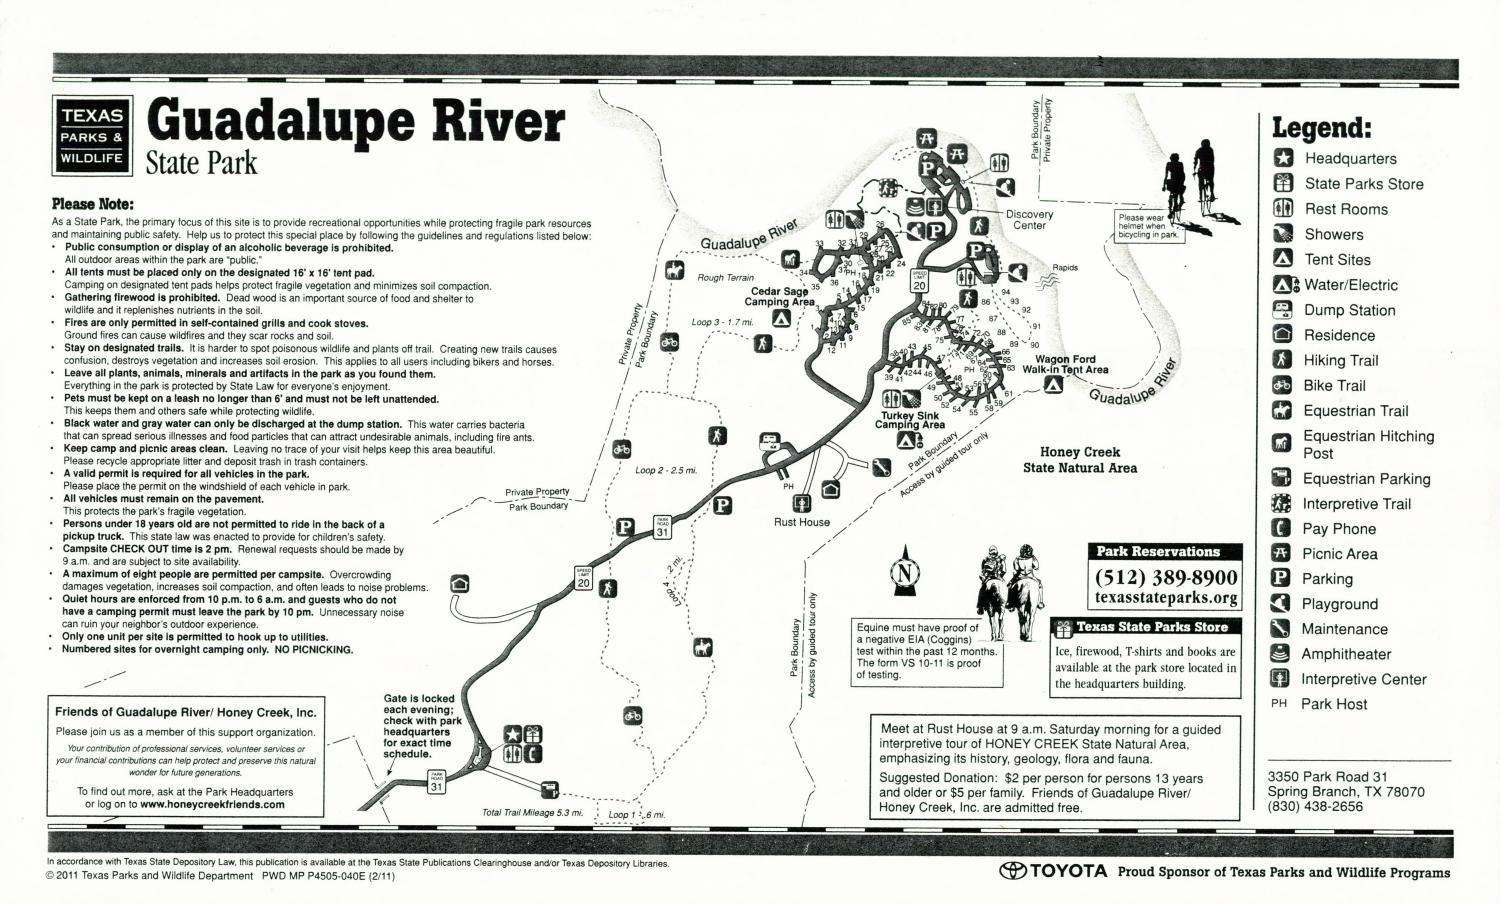 Guadalupe River State Park, Map of the Guadalupe River State Park outlining hiking trails and highlighting activities, facilities, and other features such as bathrooms, lodgings, water/electric, etc. It also contains general information for the park and for the Texas Parks and Wildlife Department.,